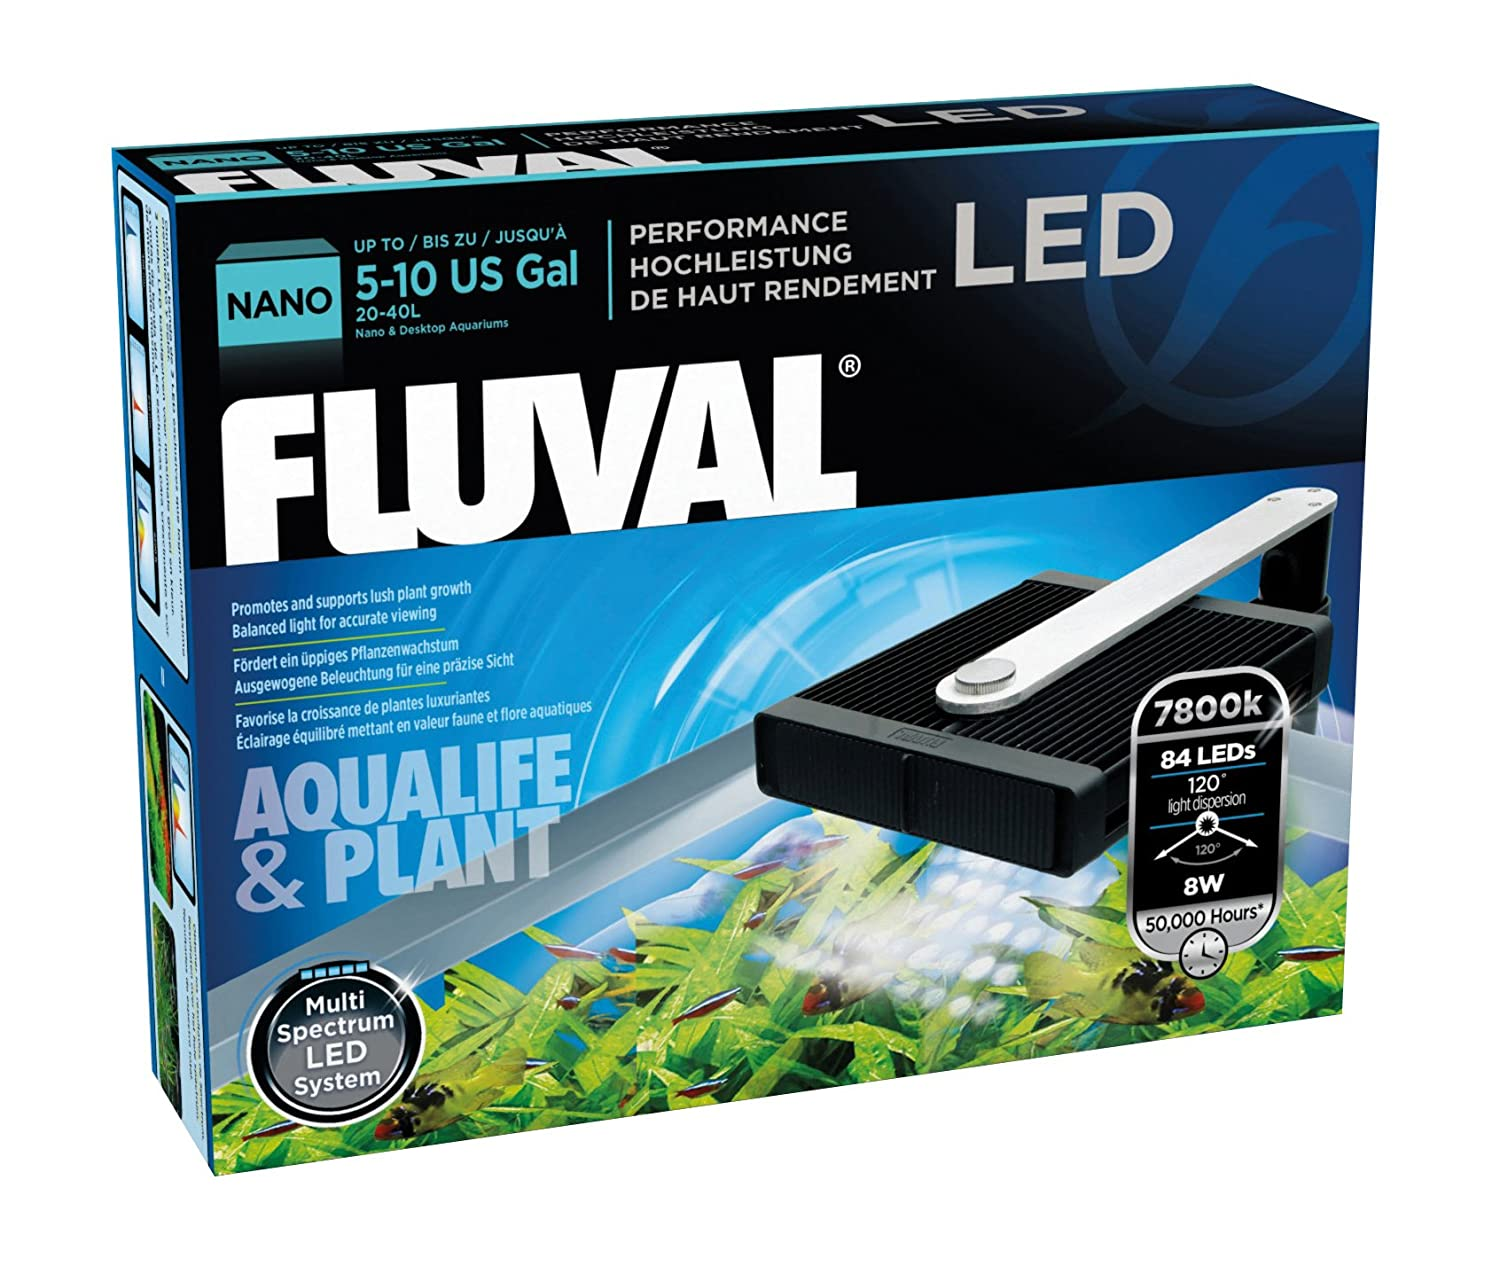 Nano led aquarium fish tank lighting - Amazon Com Fluval Nano Aqua Life And Plant Performance Led Lamp Aquarium Lights Pet Supplies